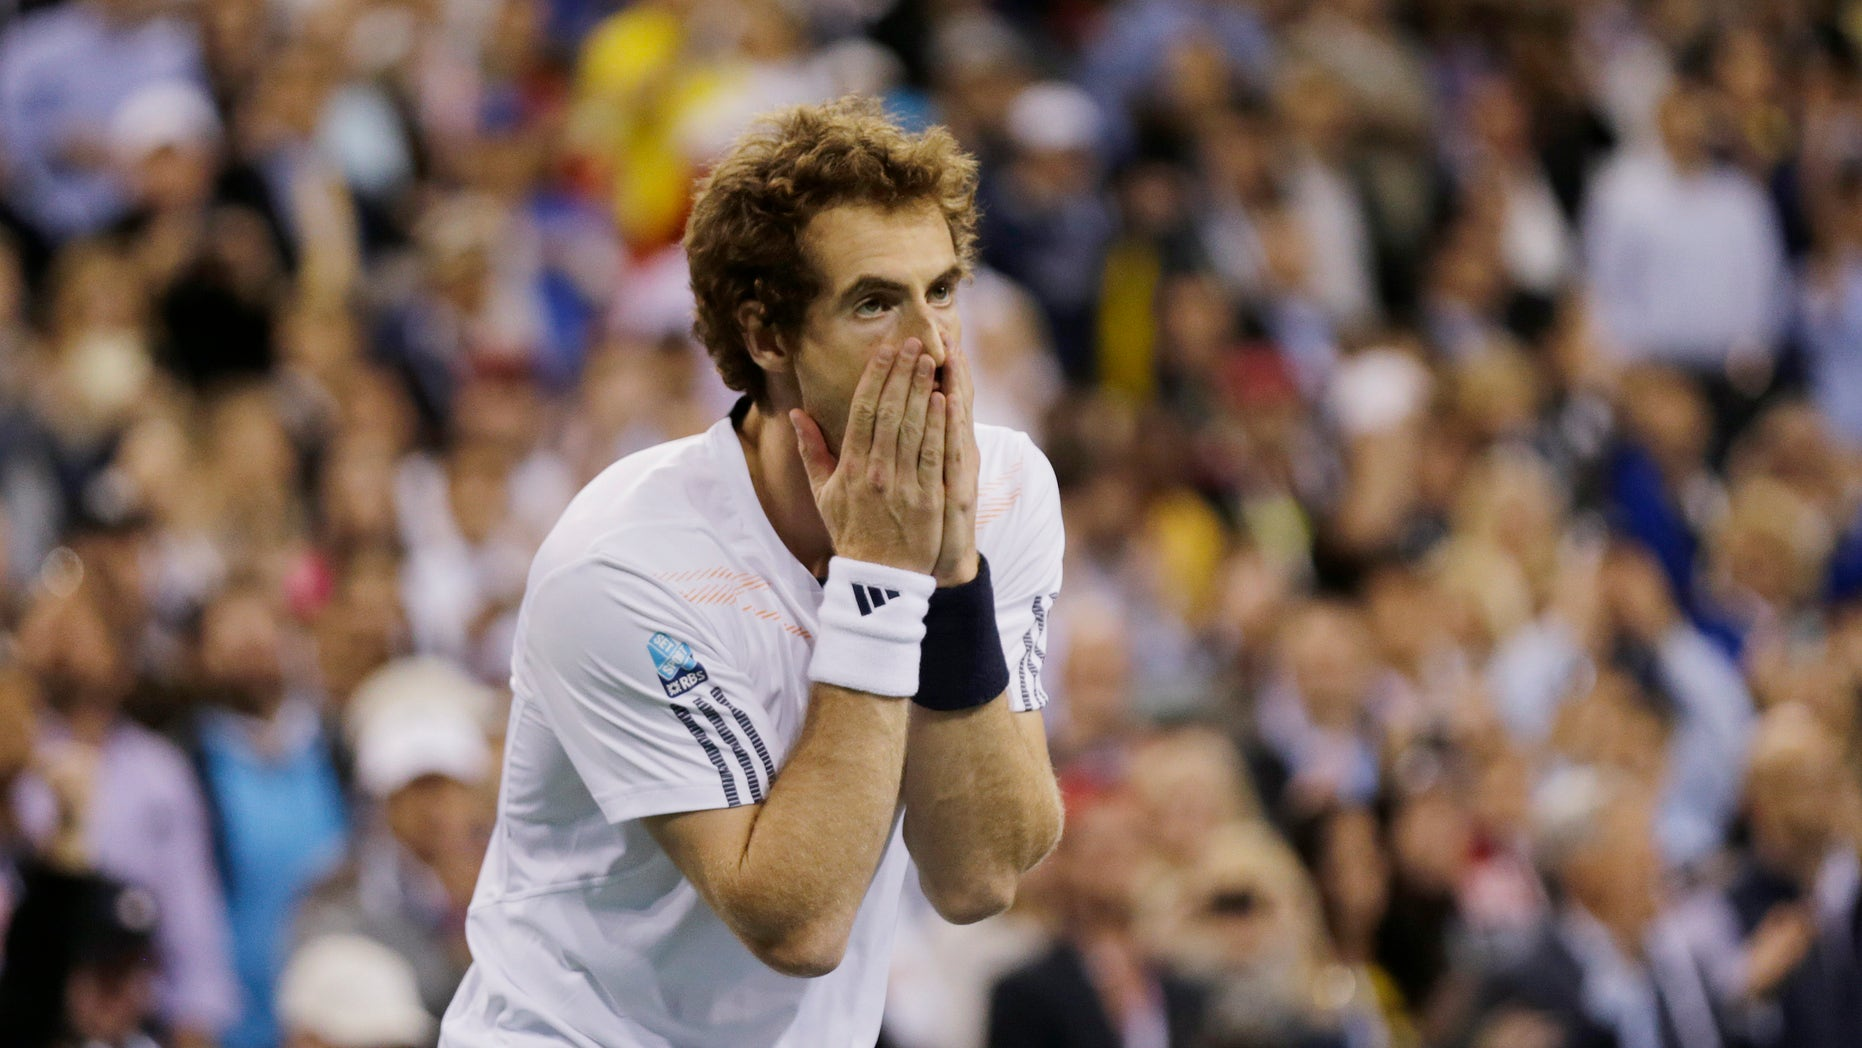 Sept. 10, 2012: Britain's Andy Murray reacts after beating Serbia's Novak Djokovic in the championship match at the 2012 US Open tennis tournament, in New York.